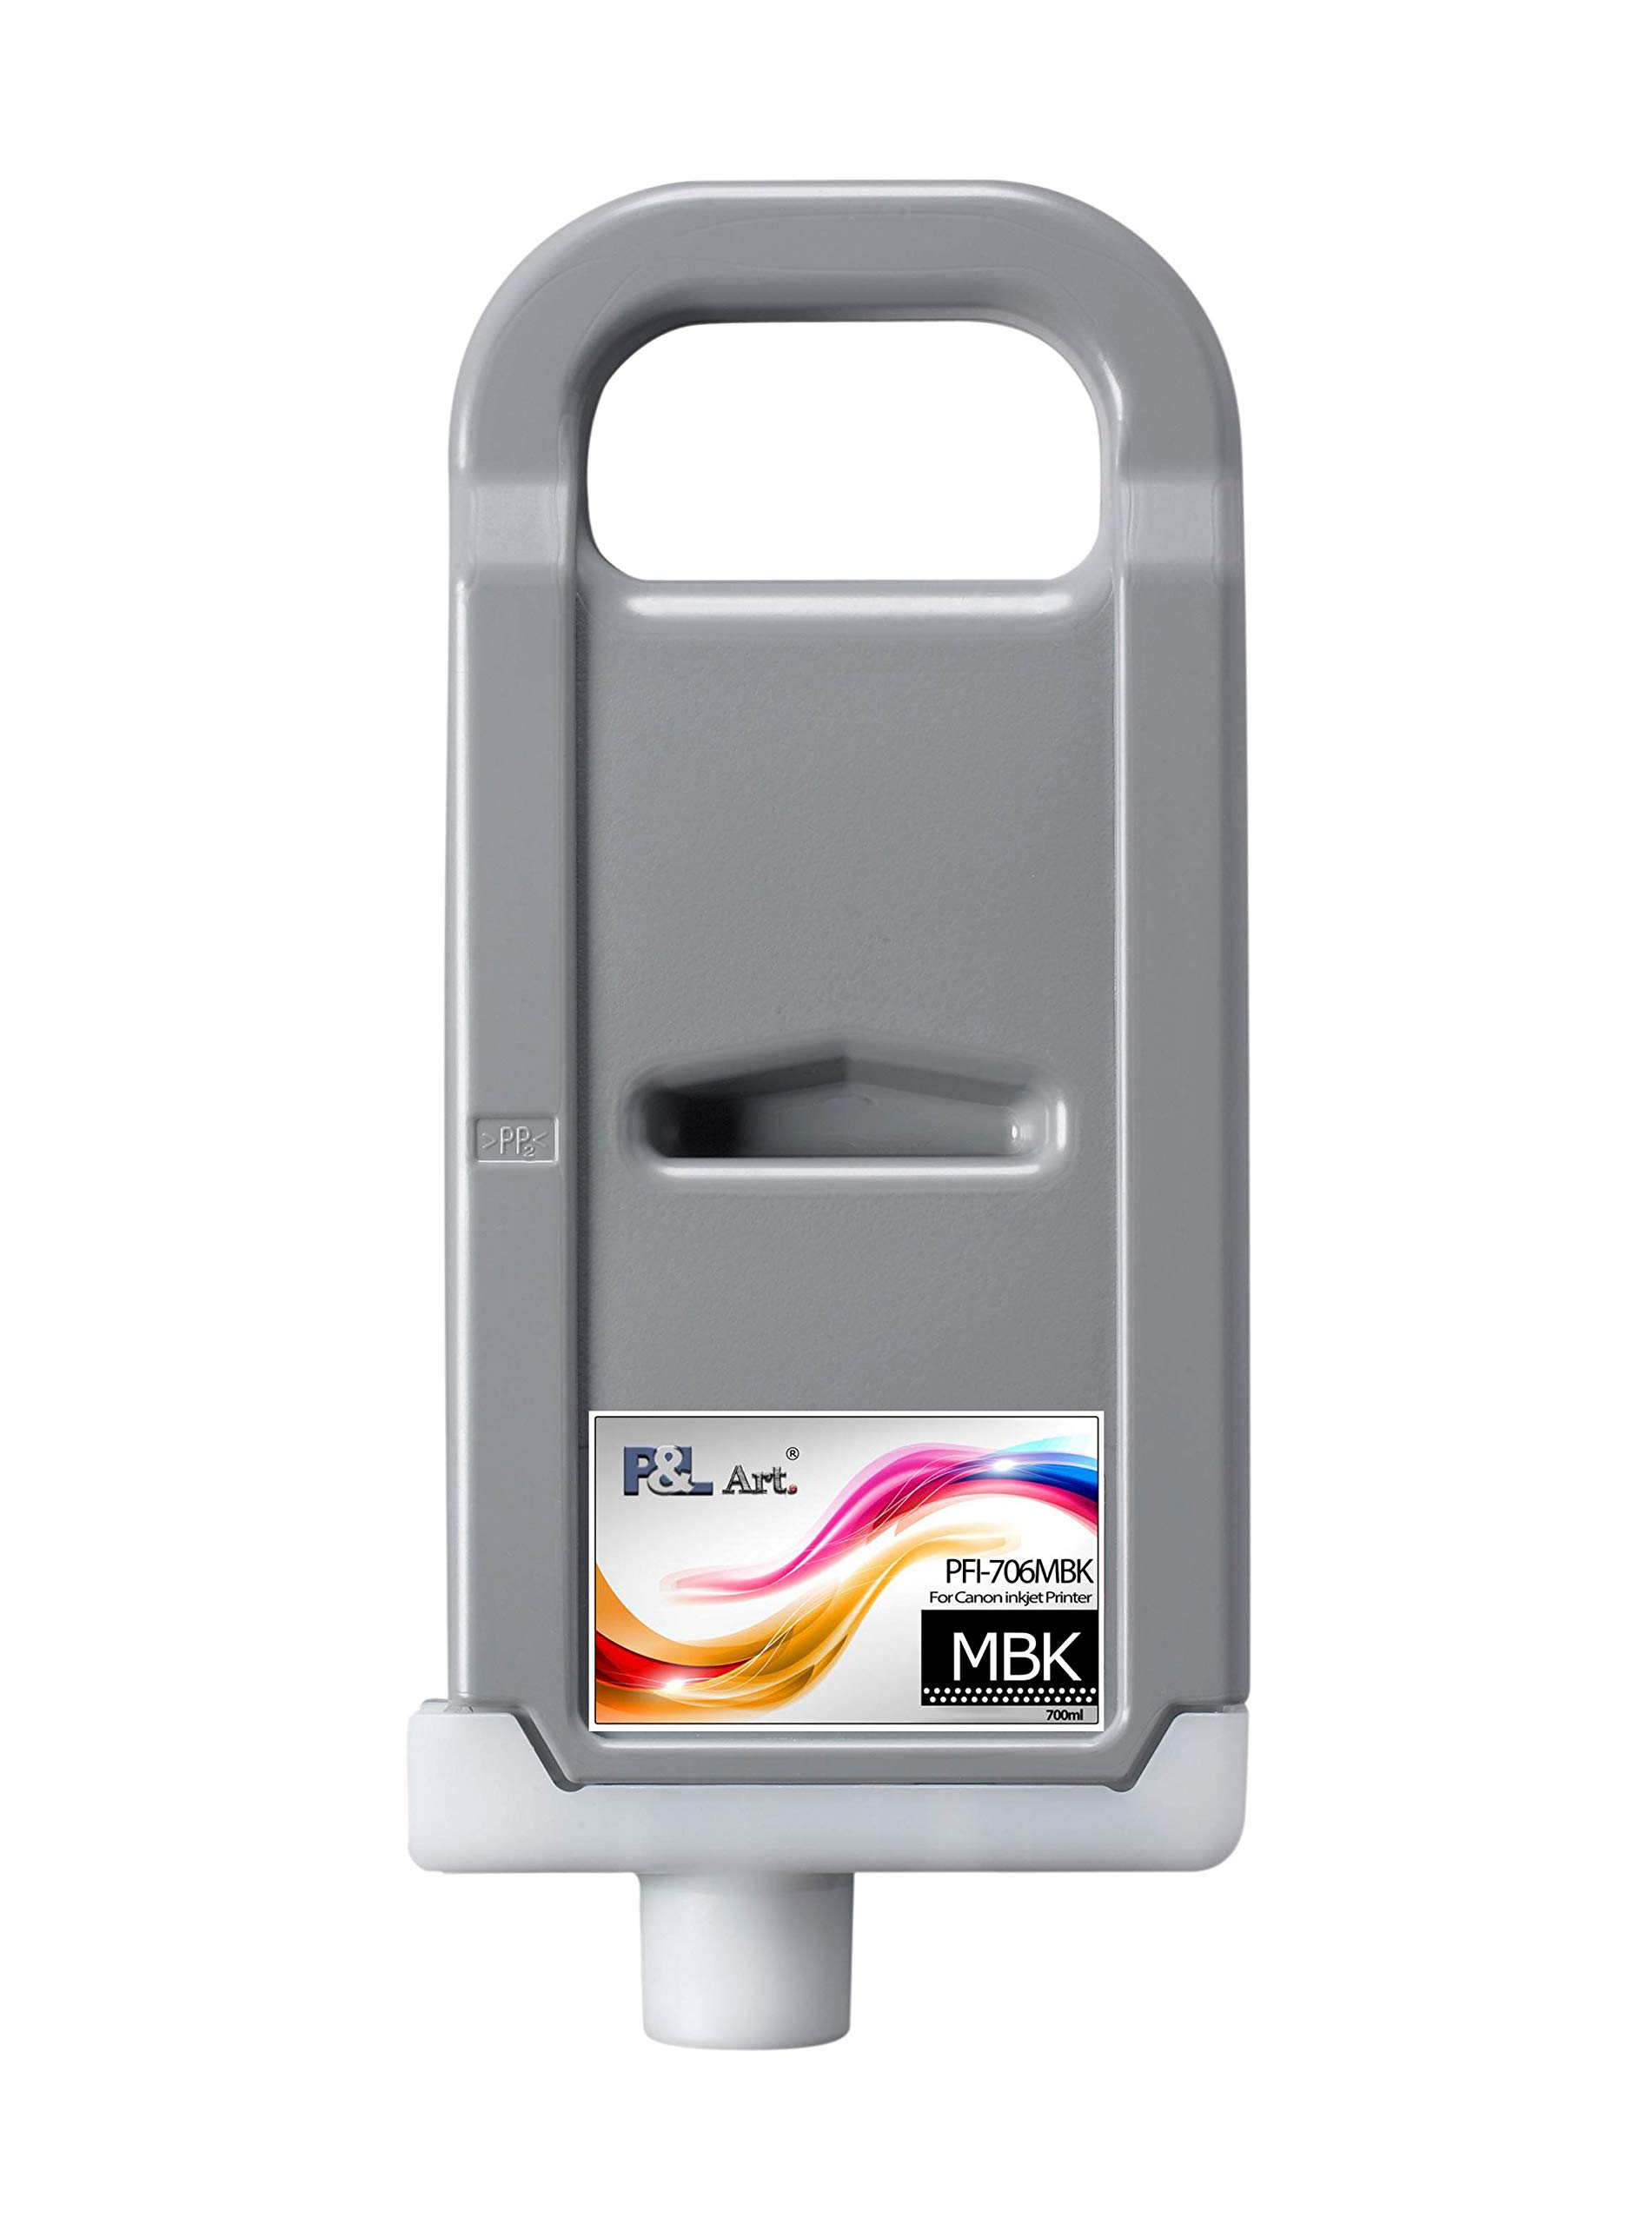 P&L ART. PFI-706MBK Pigment Ink Tank 700ml, Refillable Cartridge with Chip and Ink, 100% Compatible for Canon iPF8400 iPF9400 Printer, Matte Black Original Cartridge